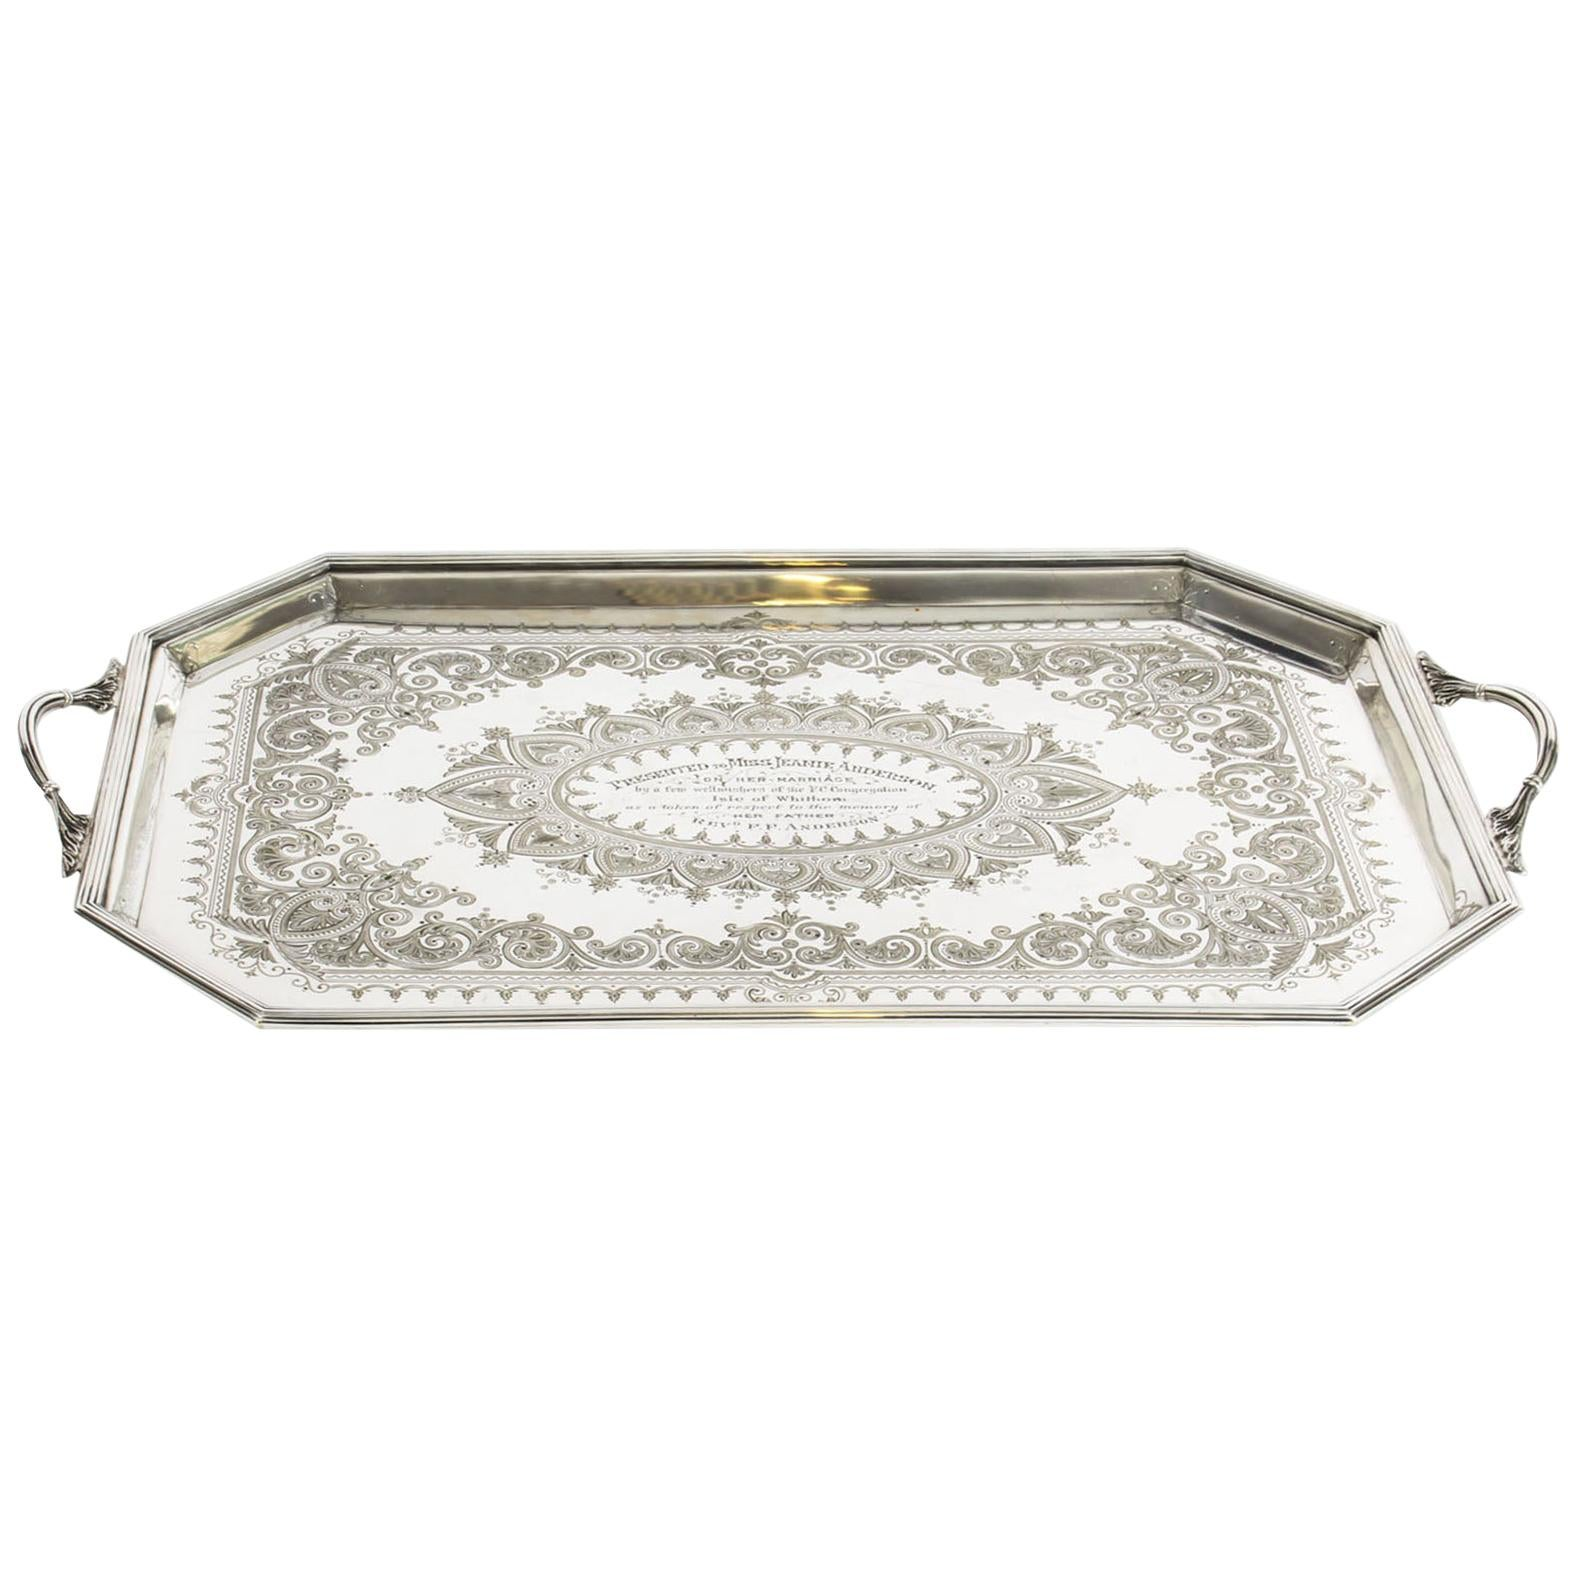 Antique Victorian Silver Plated Service Tray Thomas Latham, 19th Century